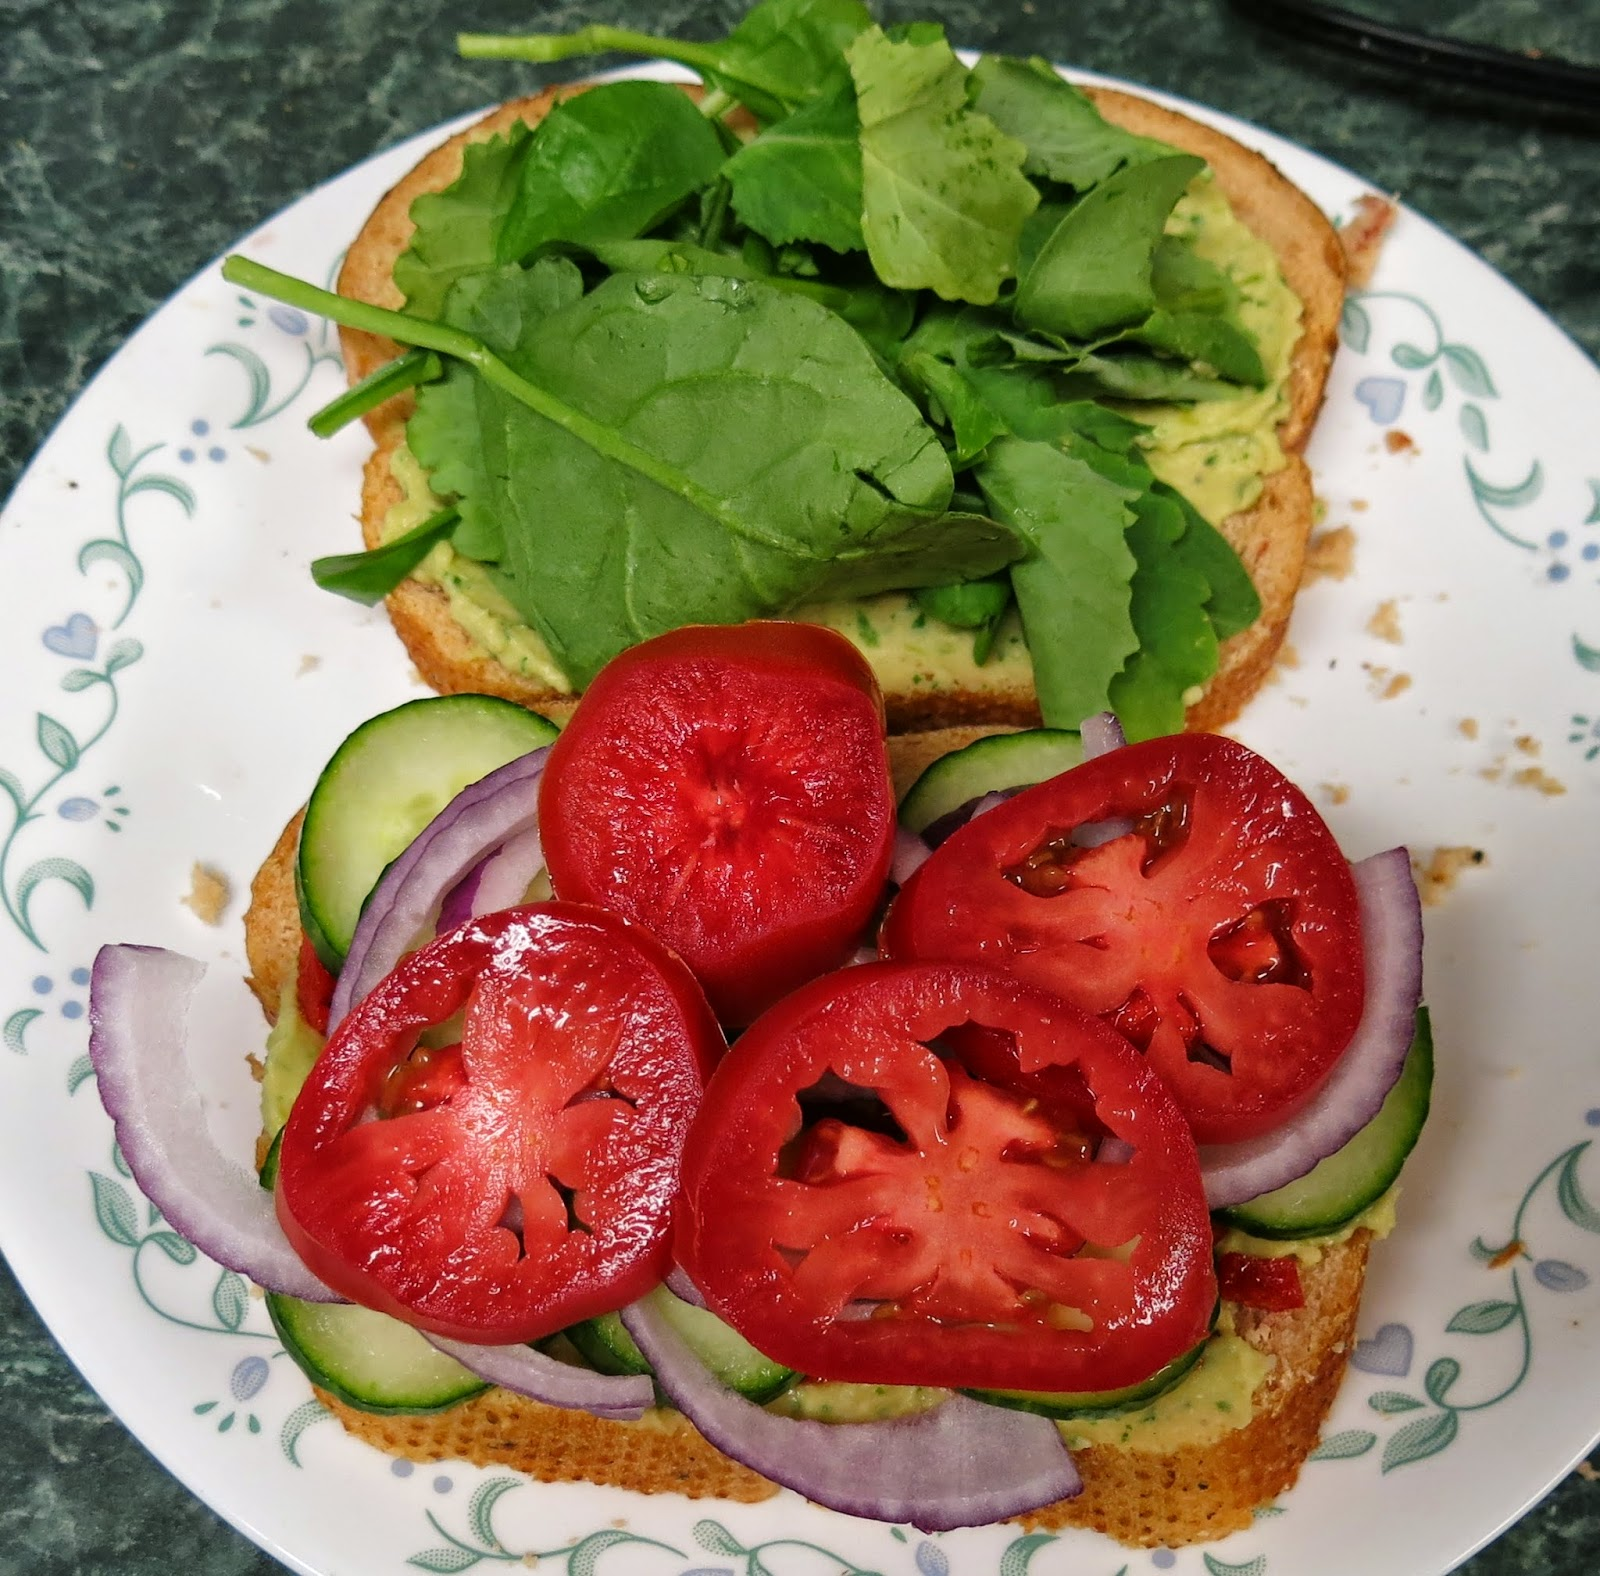 ... you use, this is an amazing veggie sandwich that is tasty and filling